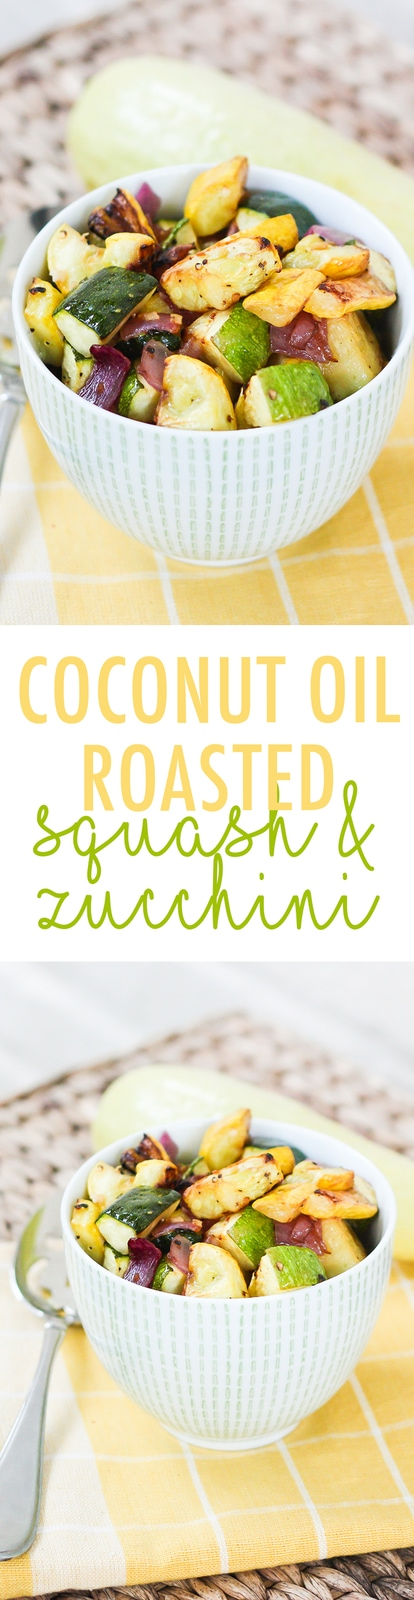 An easy summer side, this coconut oil roasted summer squash and zucchini recipe is healthy, easy and so flavorful.